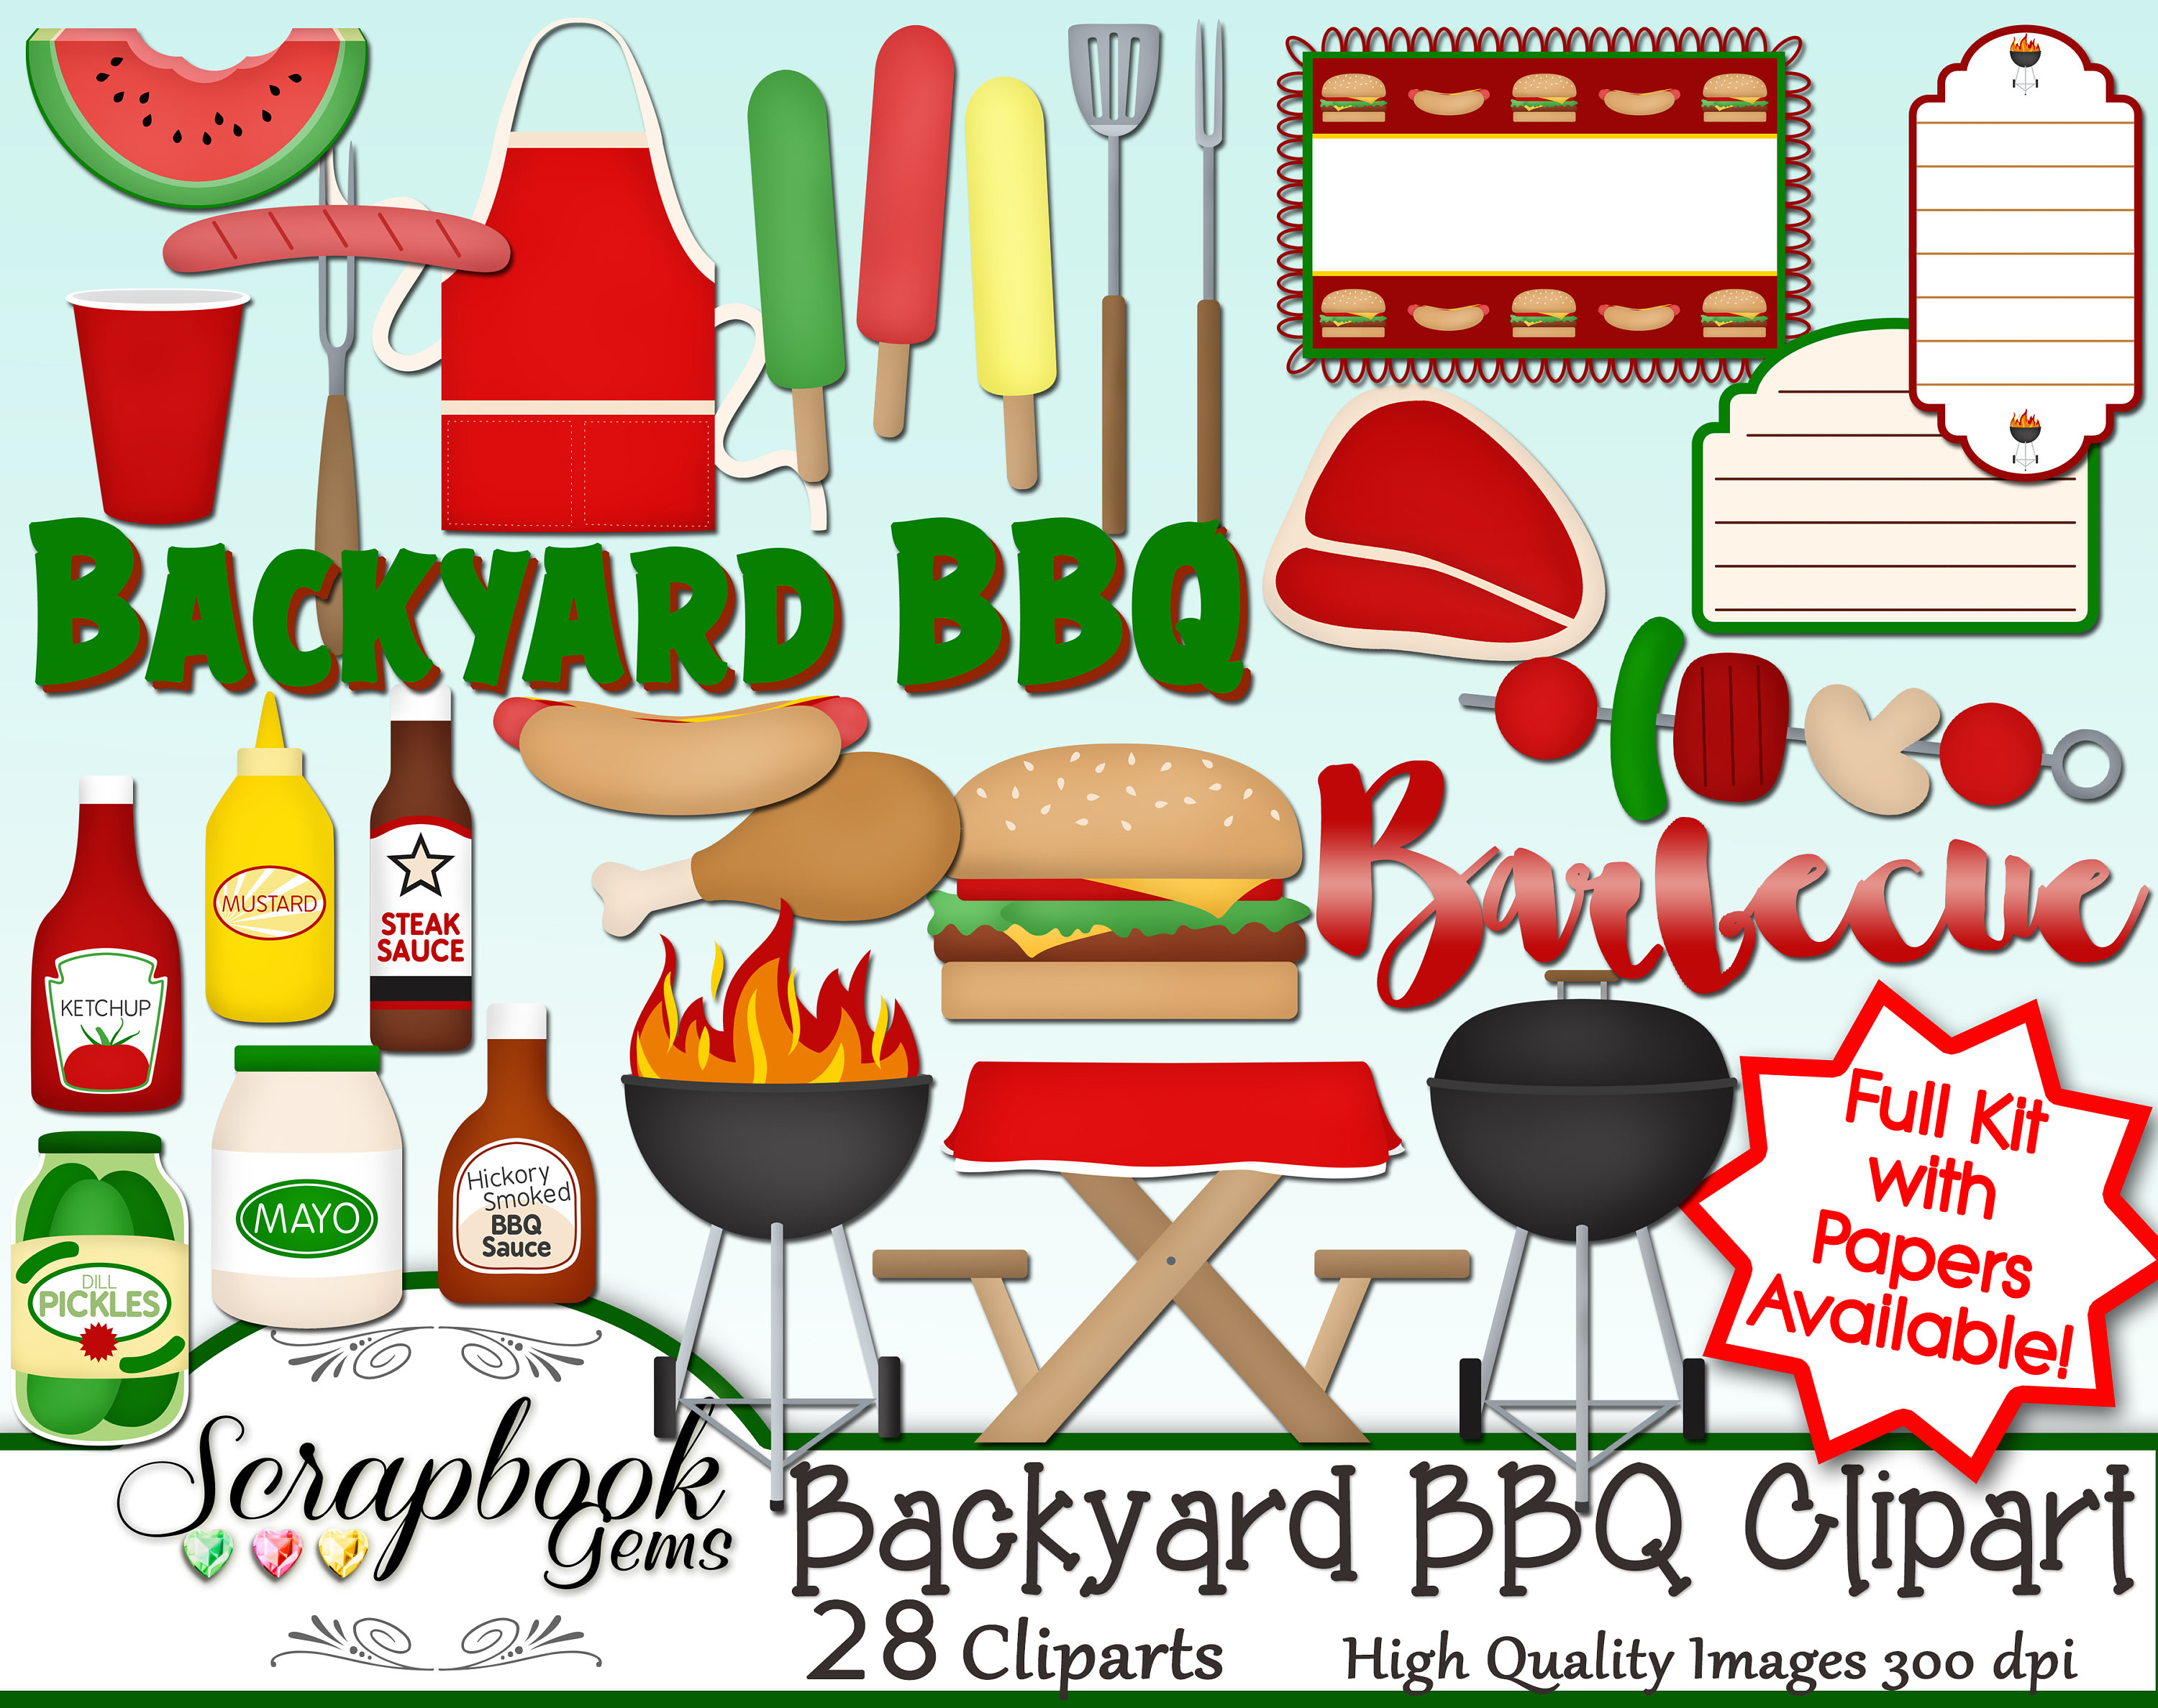 Barbecue Sauce clipart backyard bbq Digital a BACKYARD Clipart This